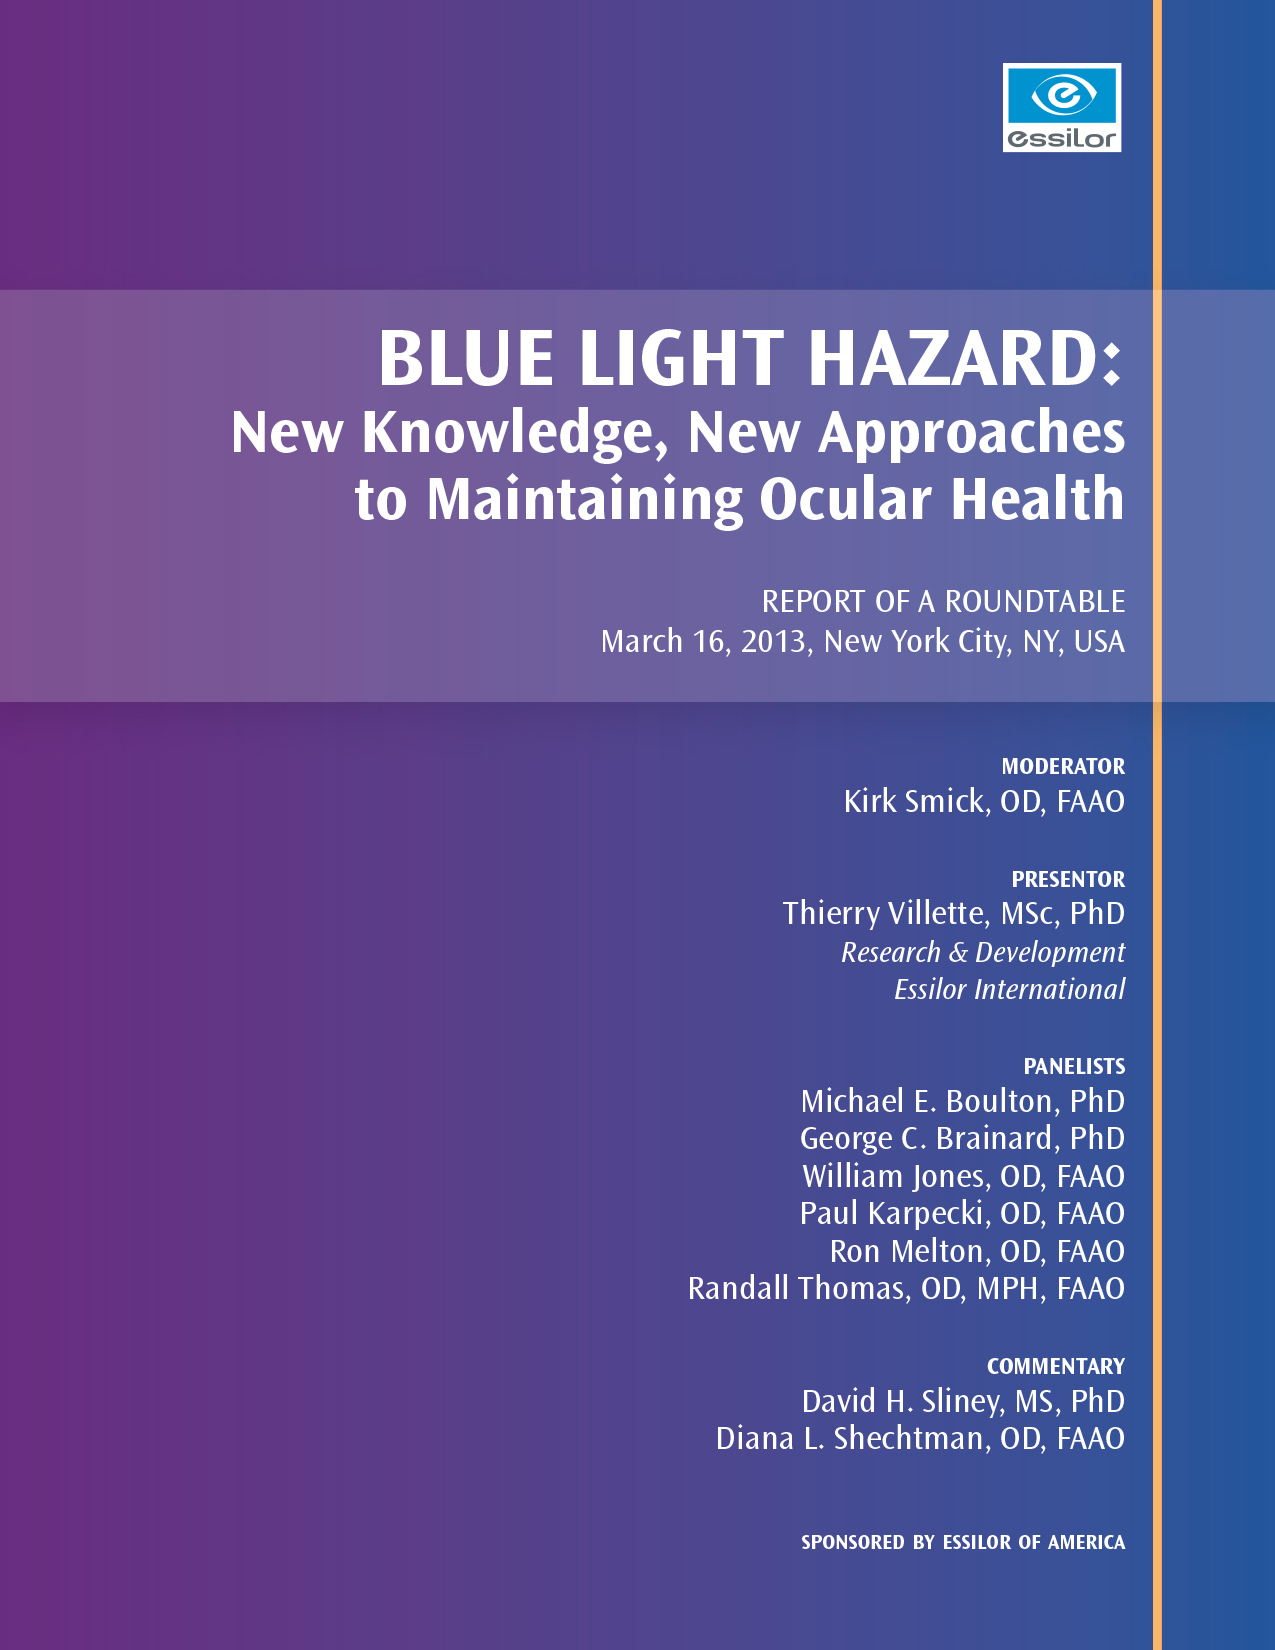 Blue Light Hazard: New Knowledge, New Approaches to Maintaining Ocular Health